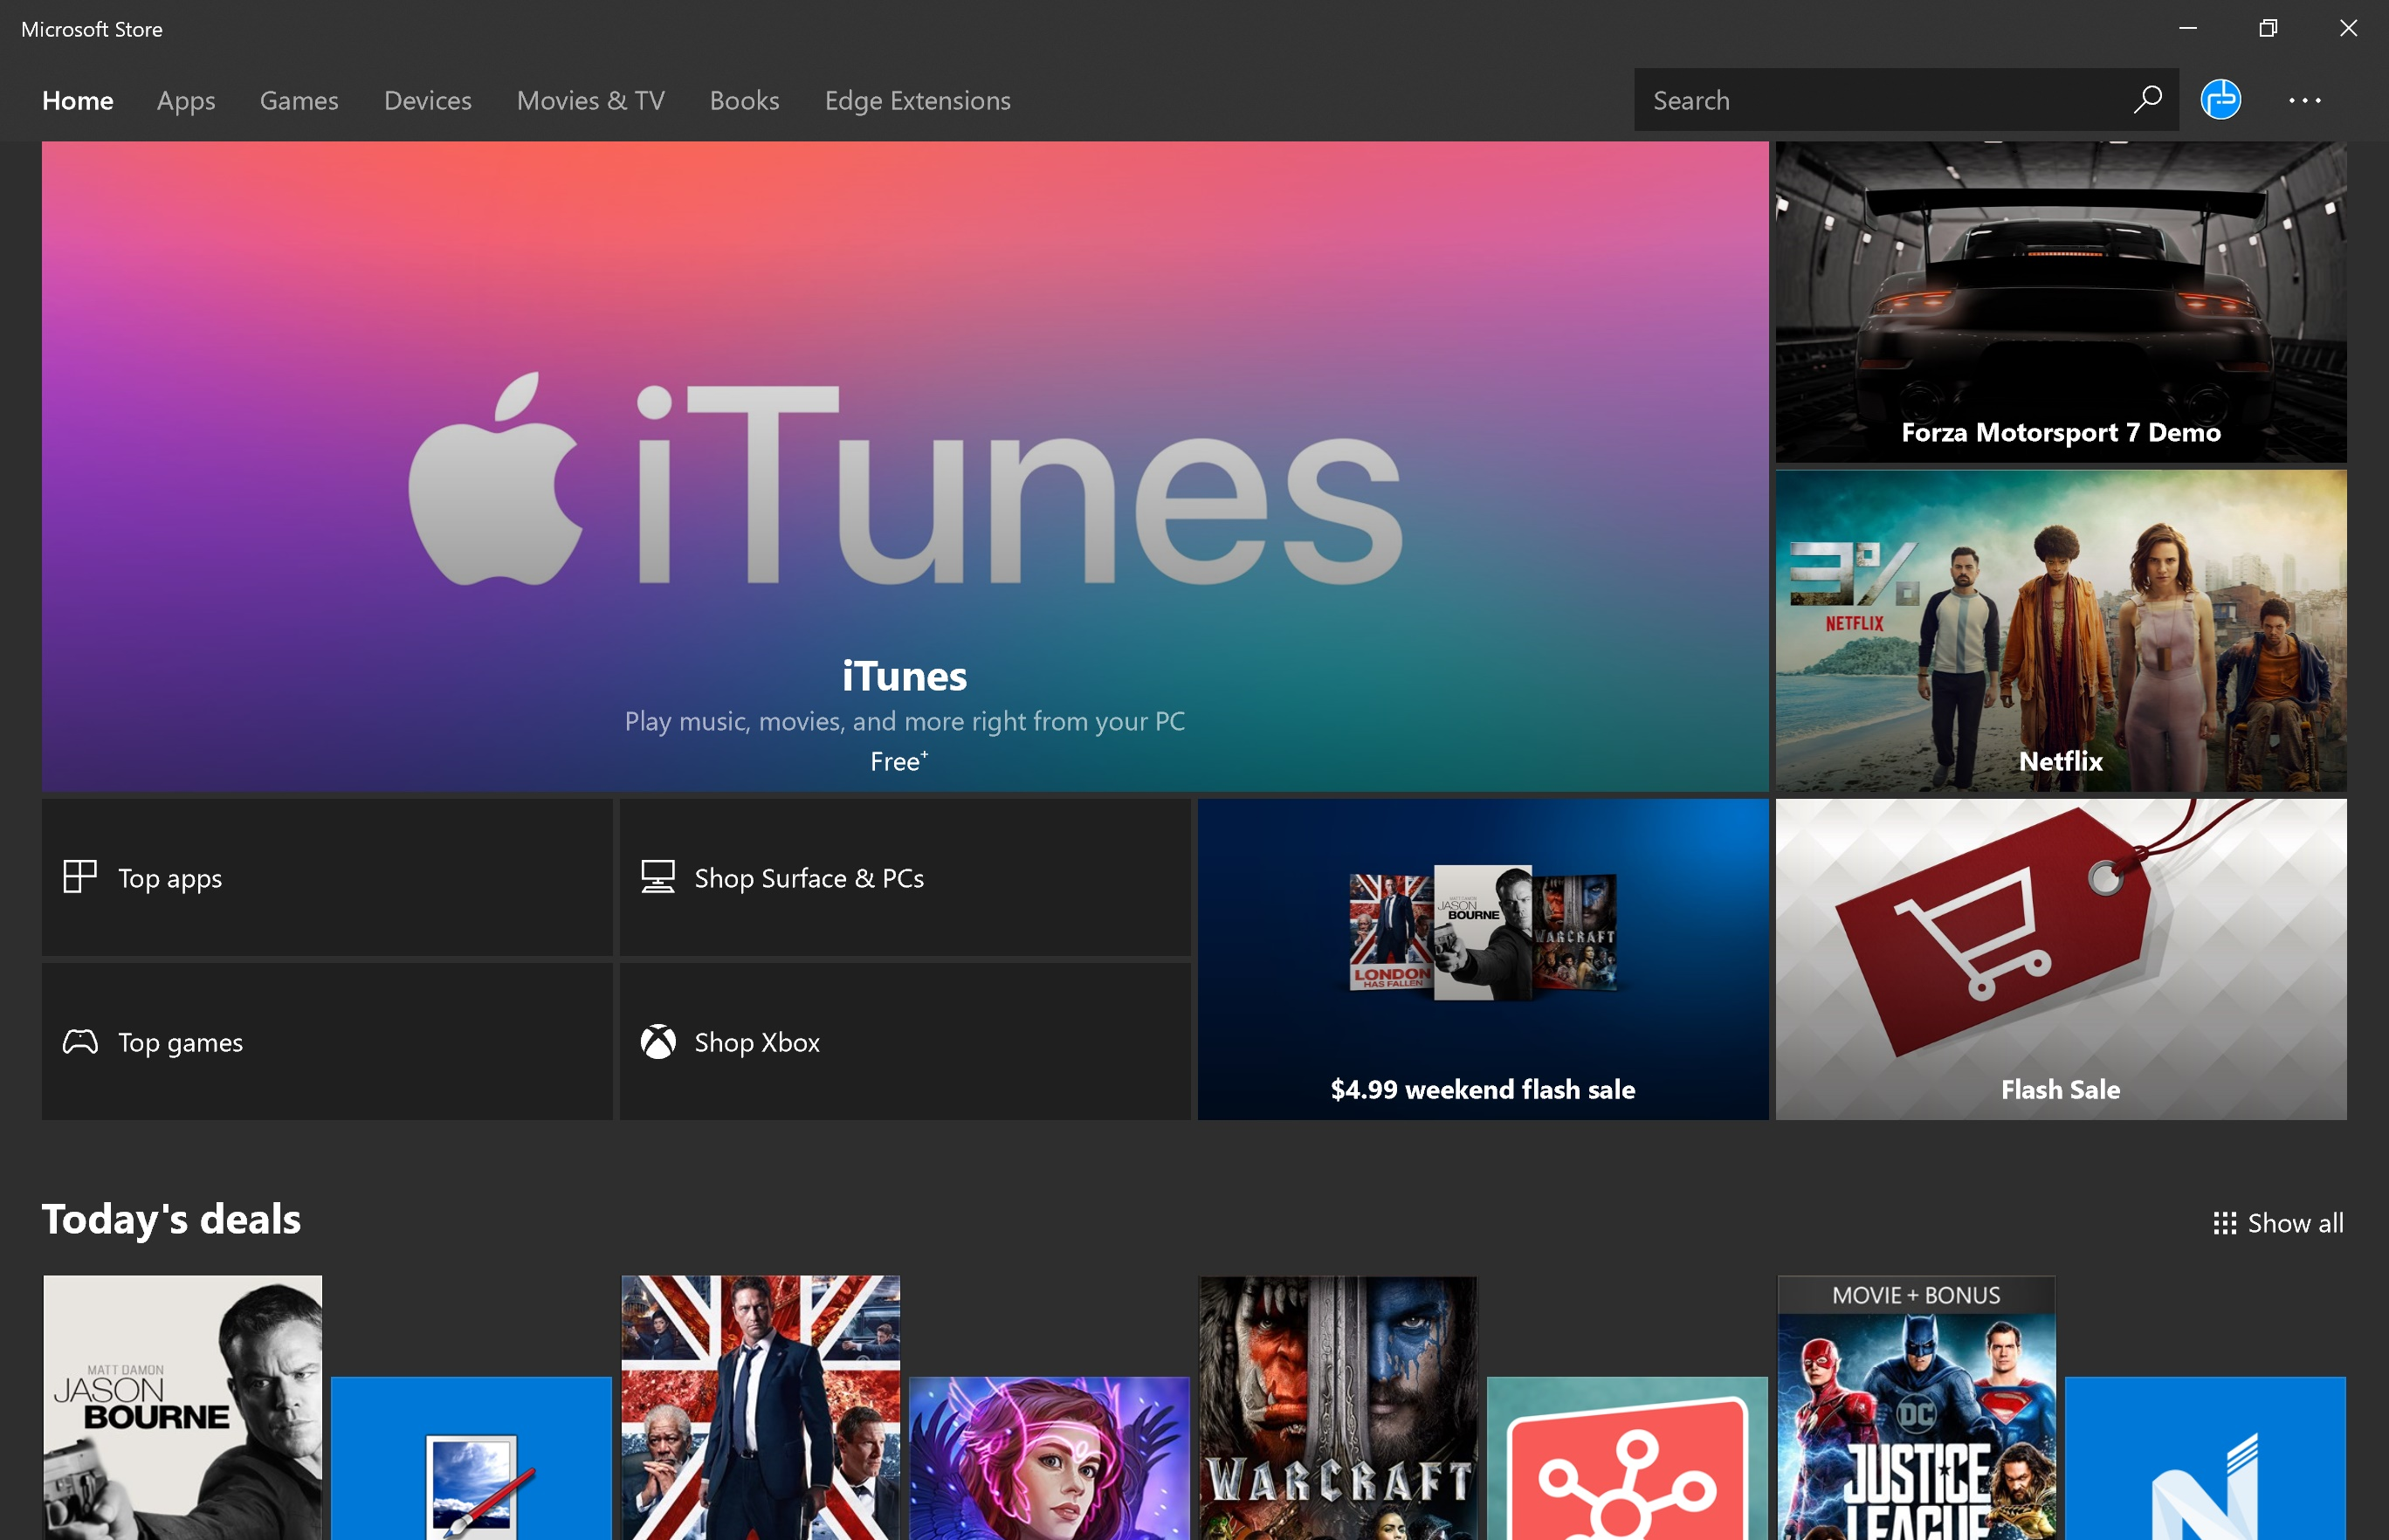 Apple iTunes hits the Microsoft Store with a Windows 10 App (2019)